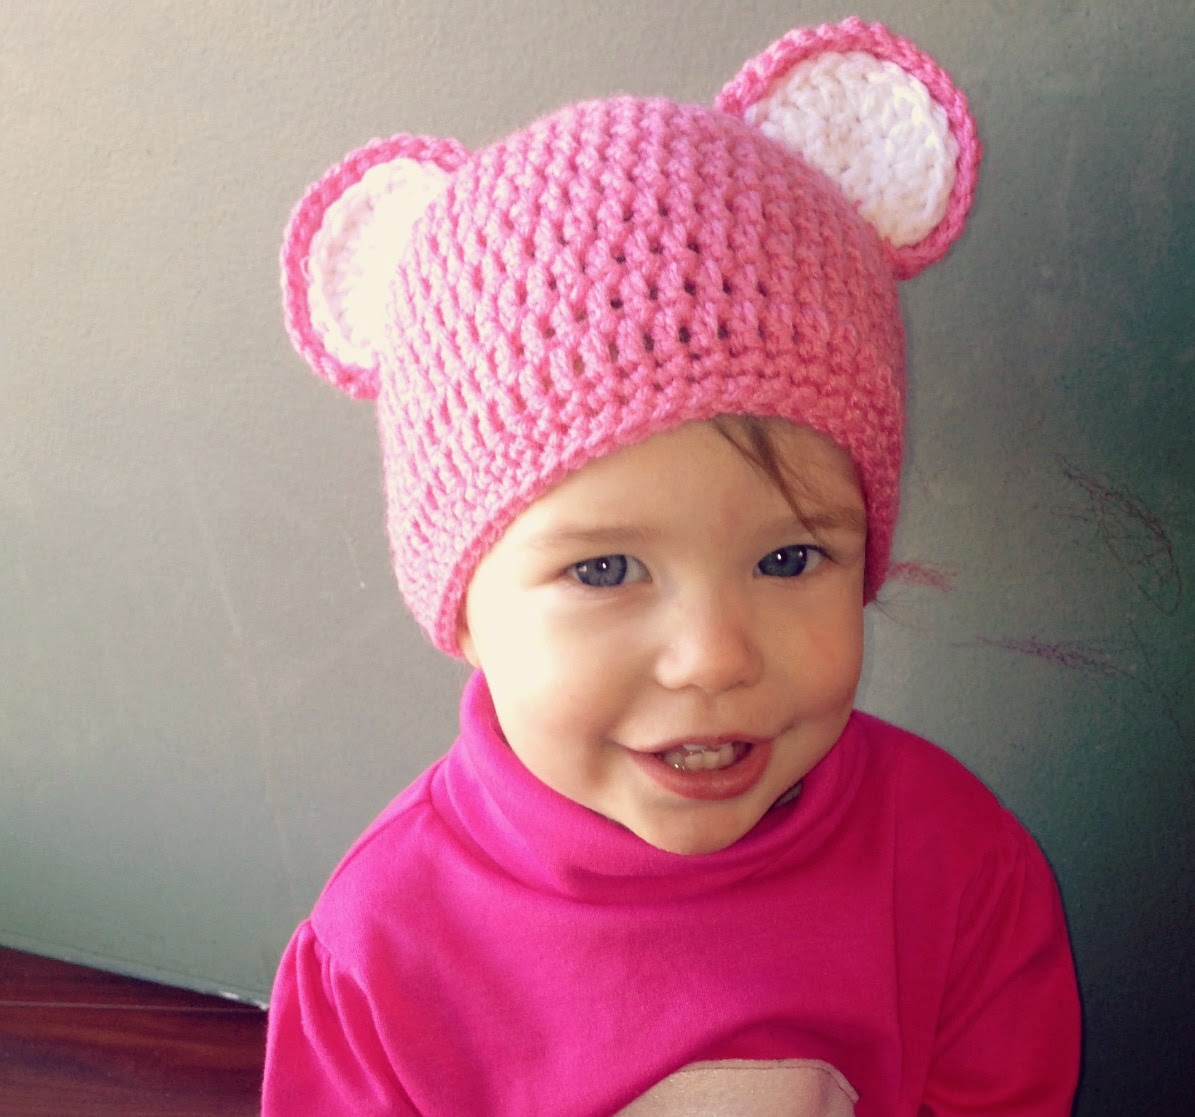 5 Little Monsters  Care Bear Hat  Free Crochet Pattern 2f1d251498d